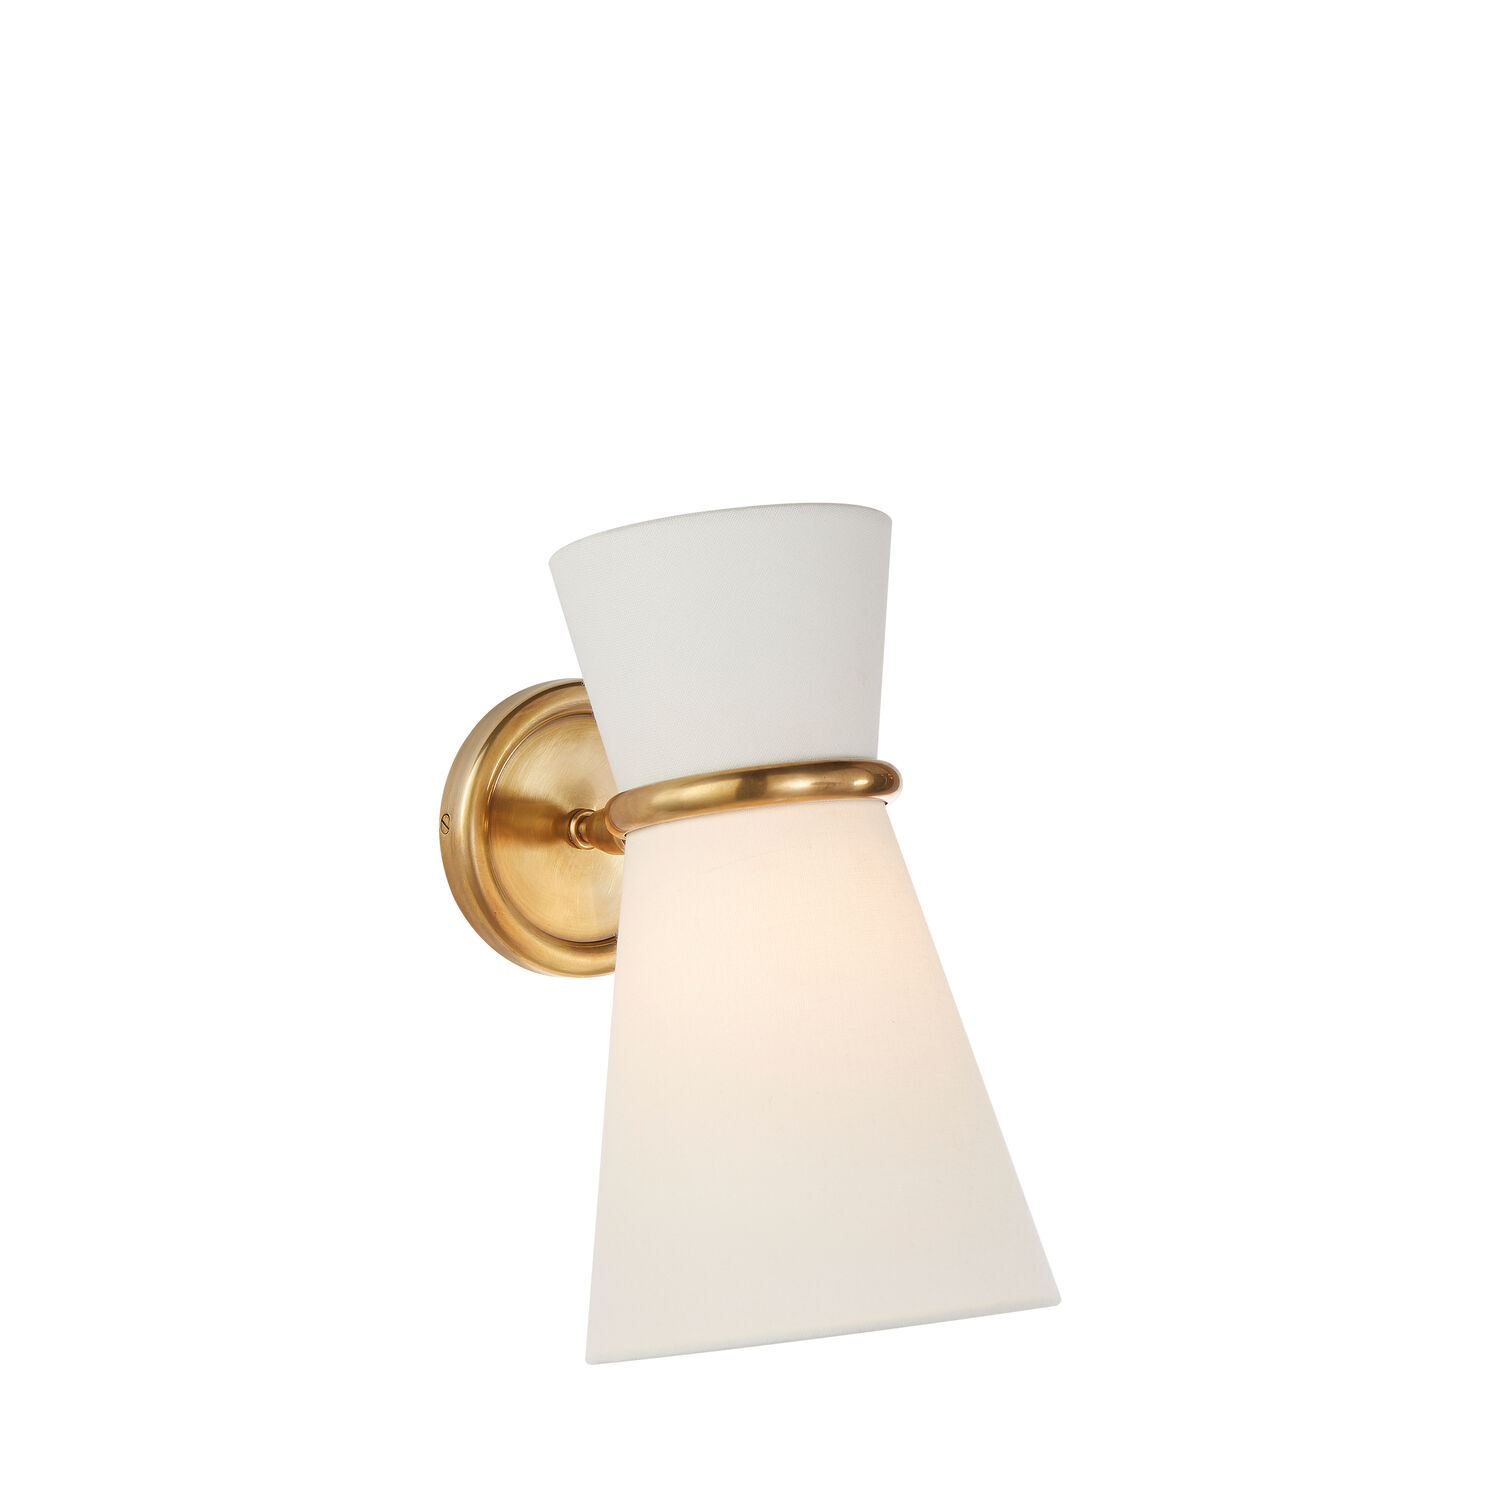 Clarkson Small Single Sconce